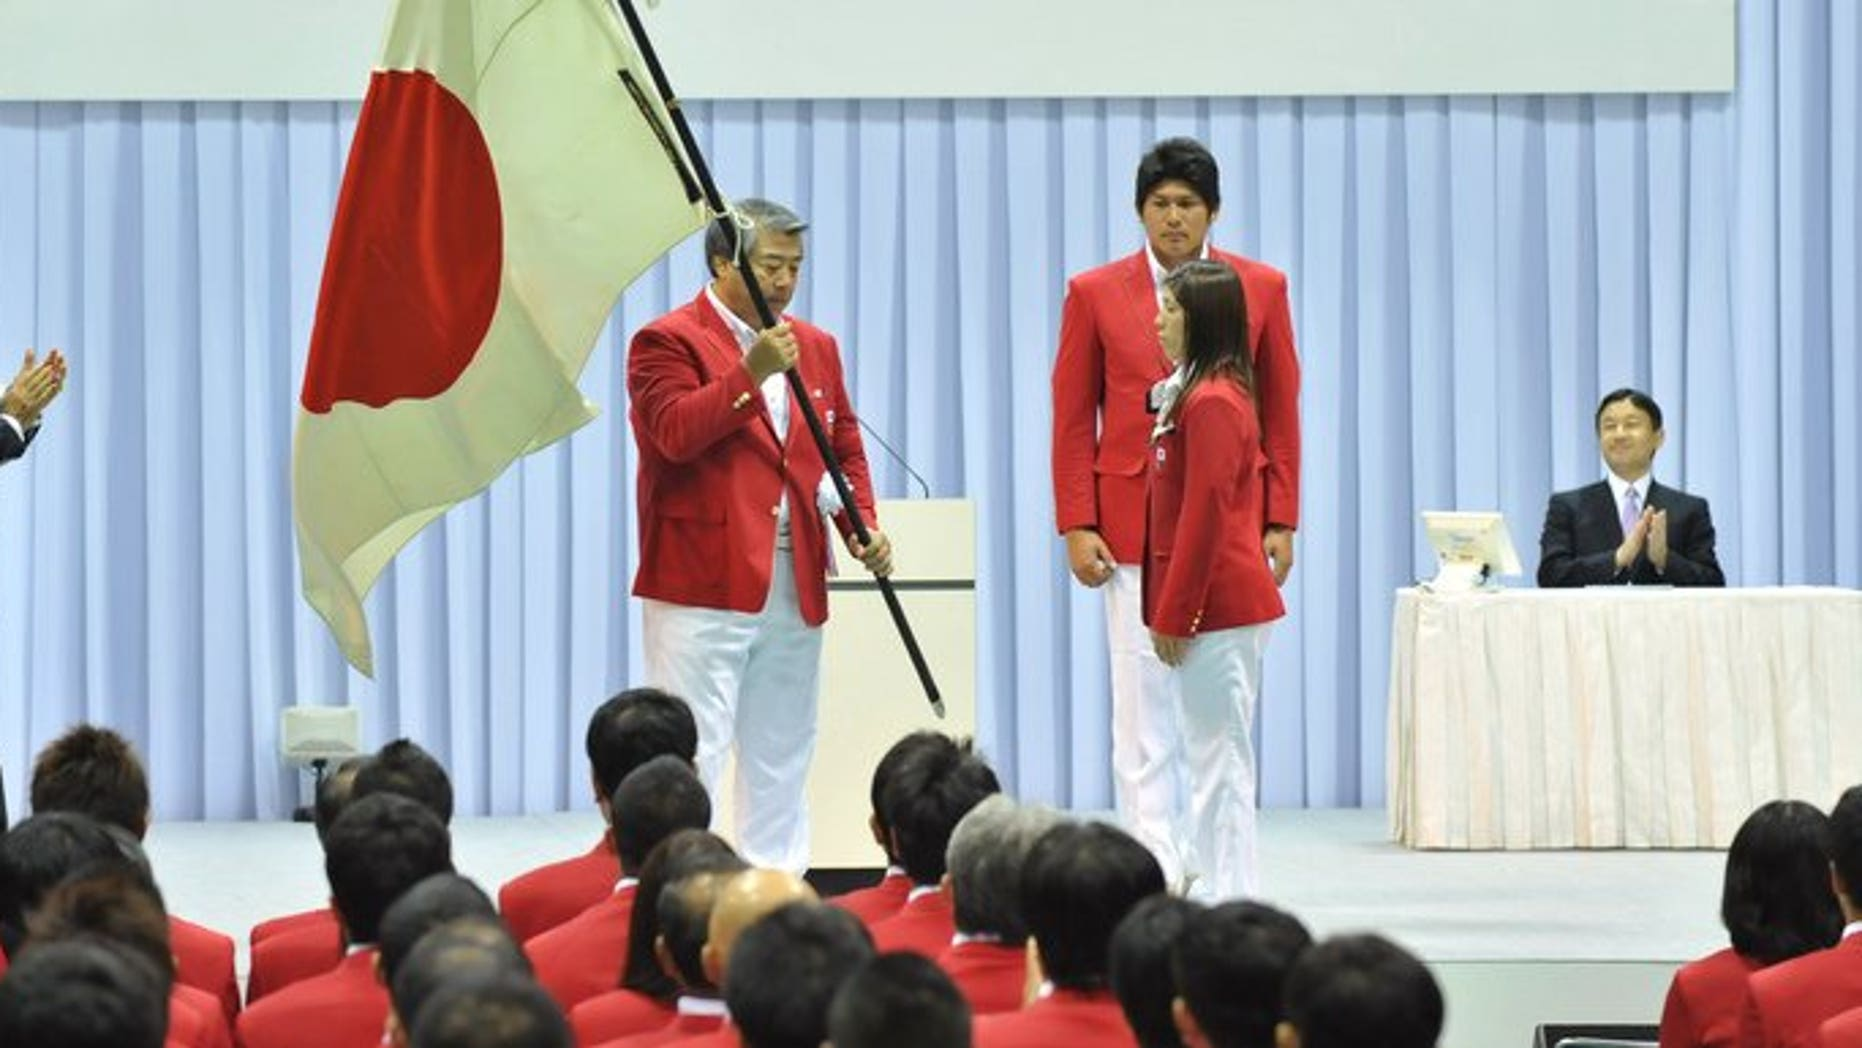 The head of the All Japan Judo Federation Haruki Uemura (C) holds the national flag at a ceremony in Tokyo in 2012. Uemura is to announce his resignation according to reports, after the sport was sullied in its birthplace by a series of scandals including abusive coaching, sexual harassment and misuse of funds.